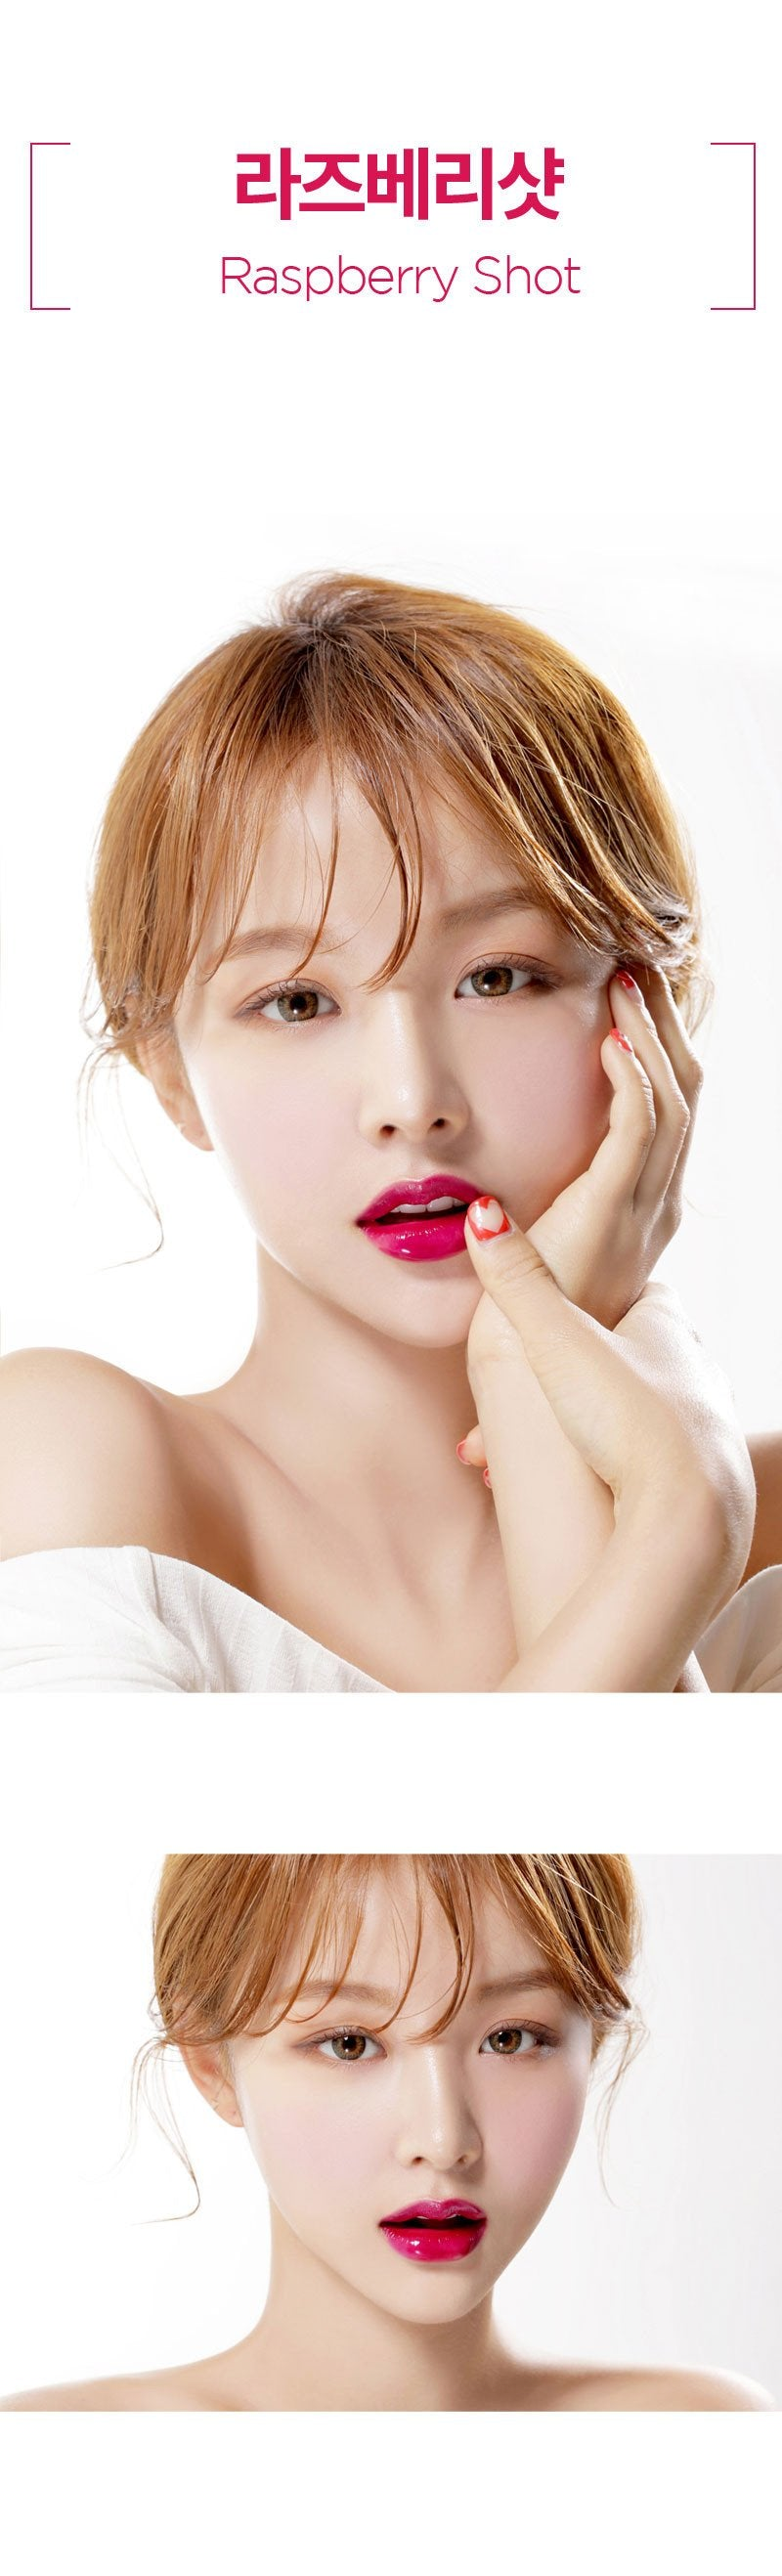 Korea's Cosmetic Brand, Vely Vely Water Tint Lip Plumping Duo in Raspberry Shot